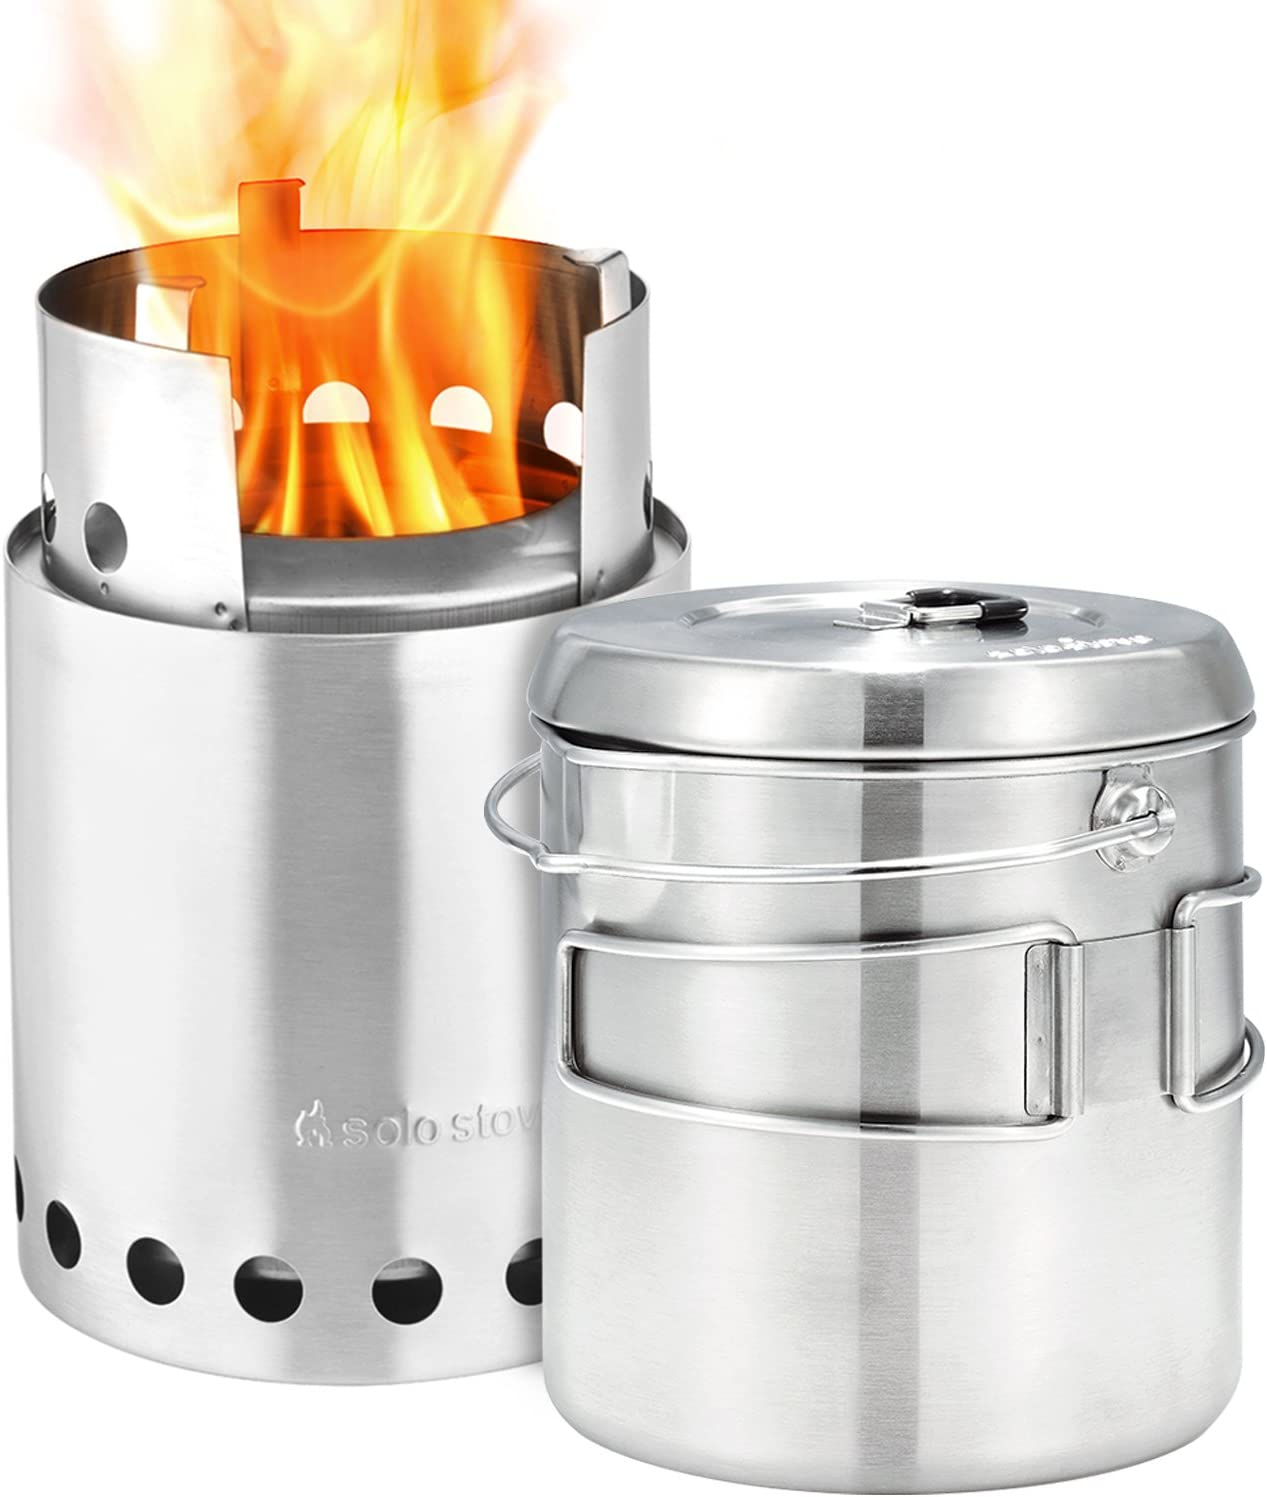 Top 10 Best Backpacking & Camping Stoves Reviews in 2020 4